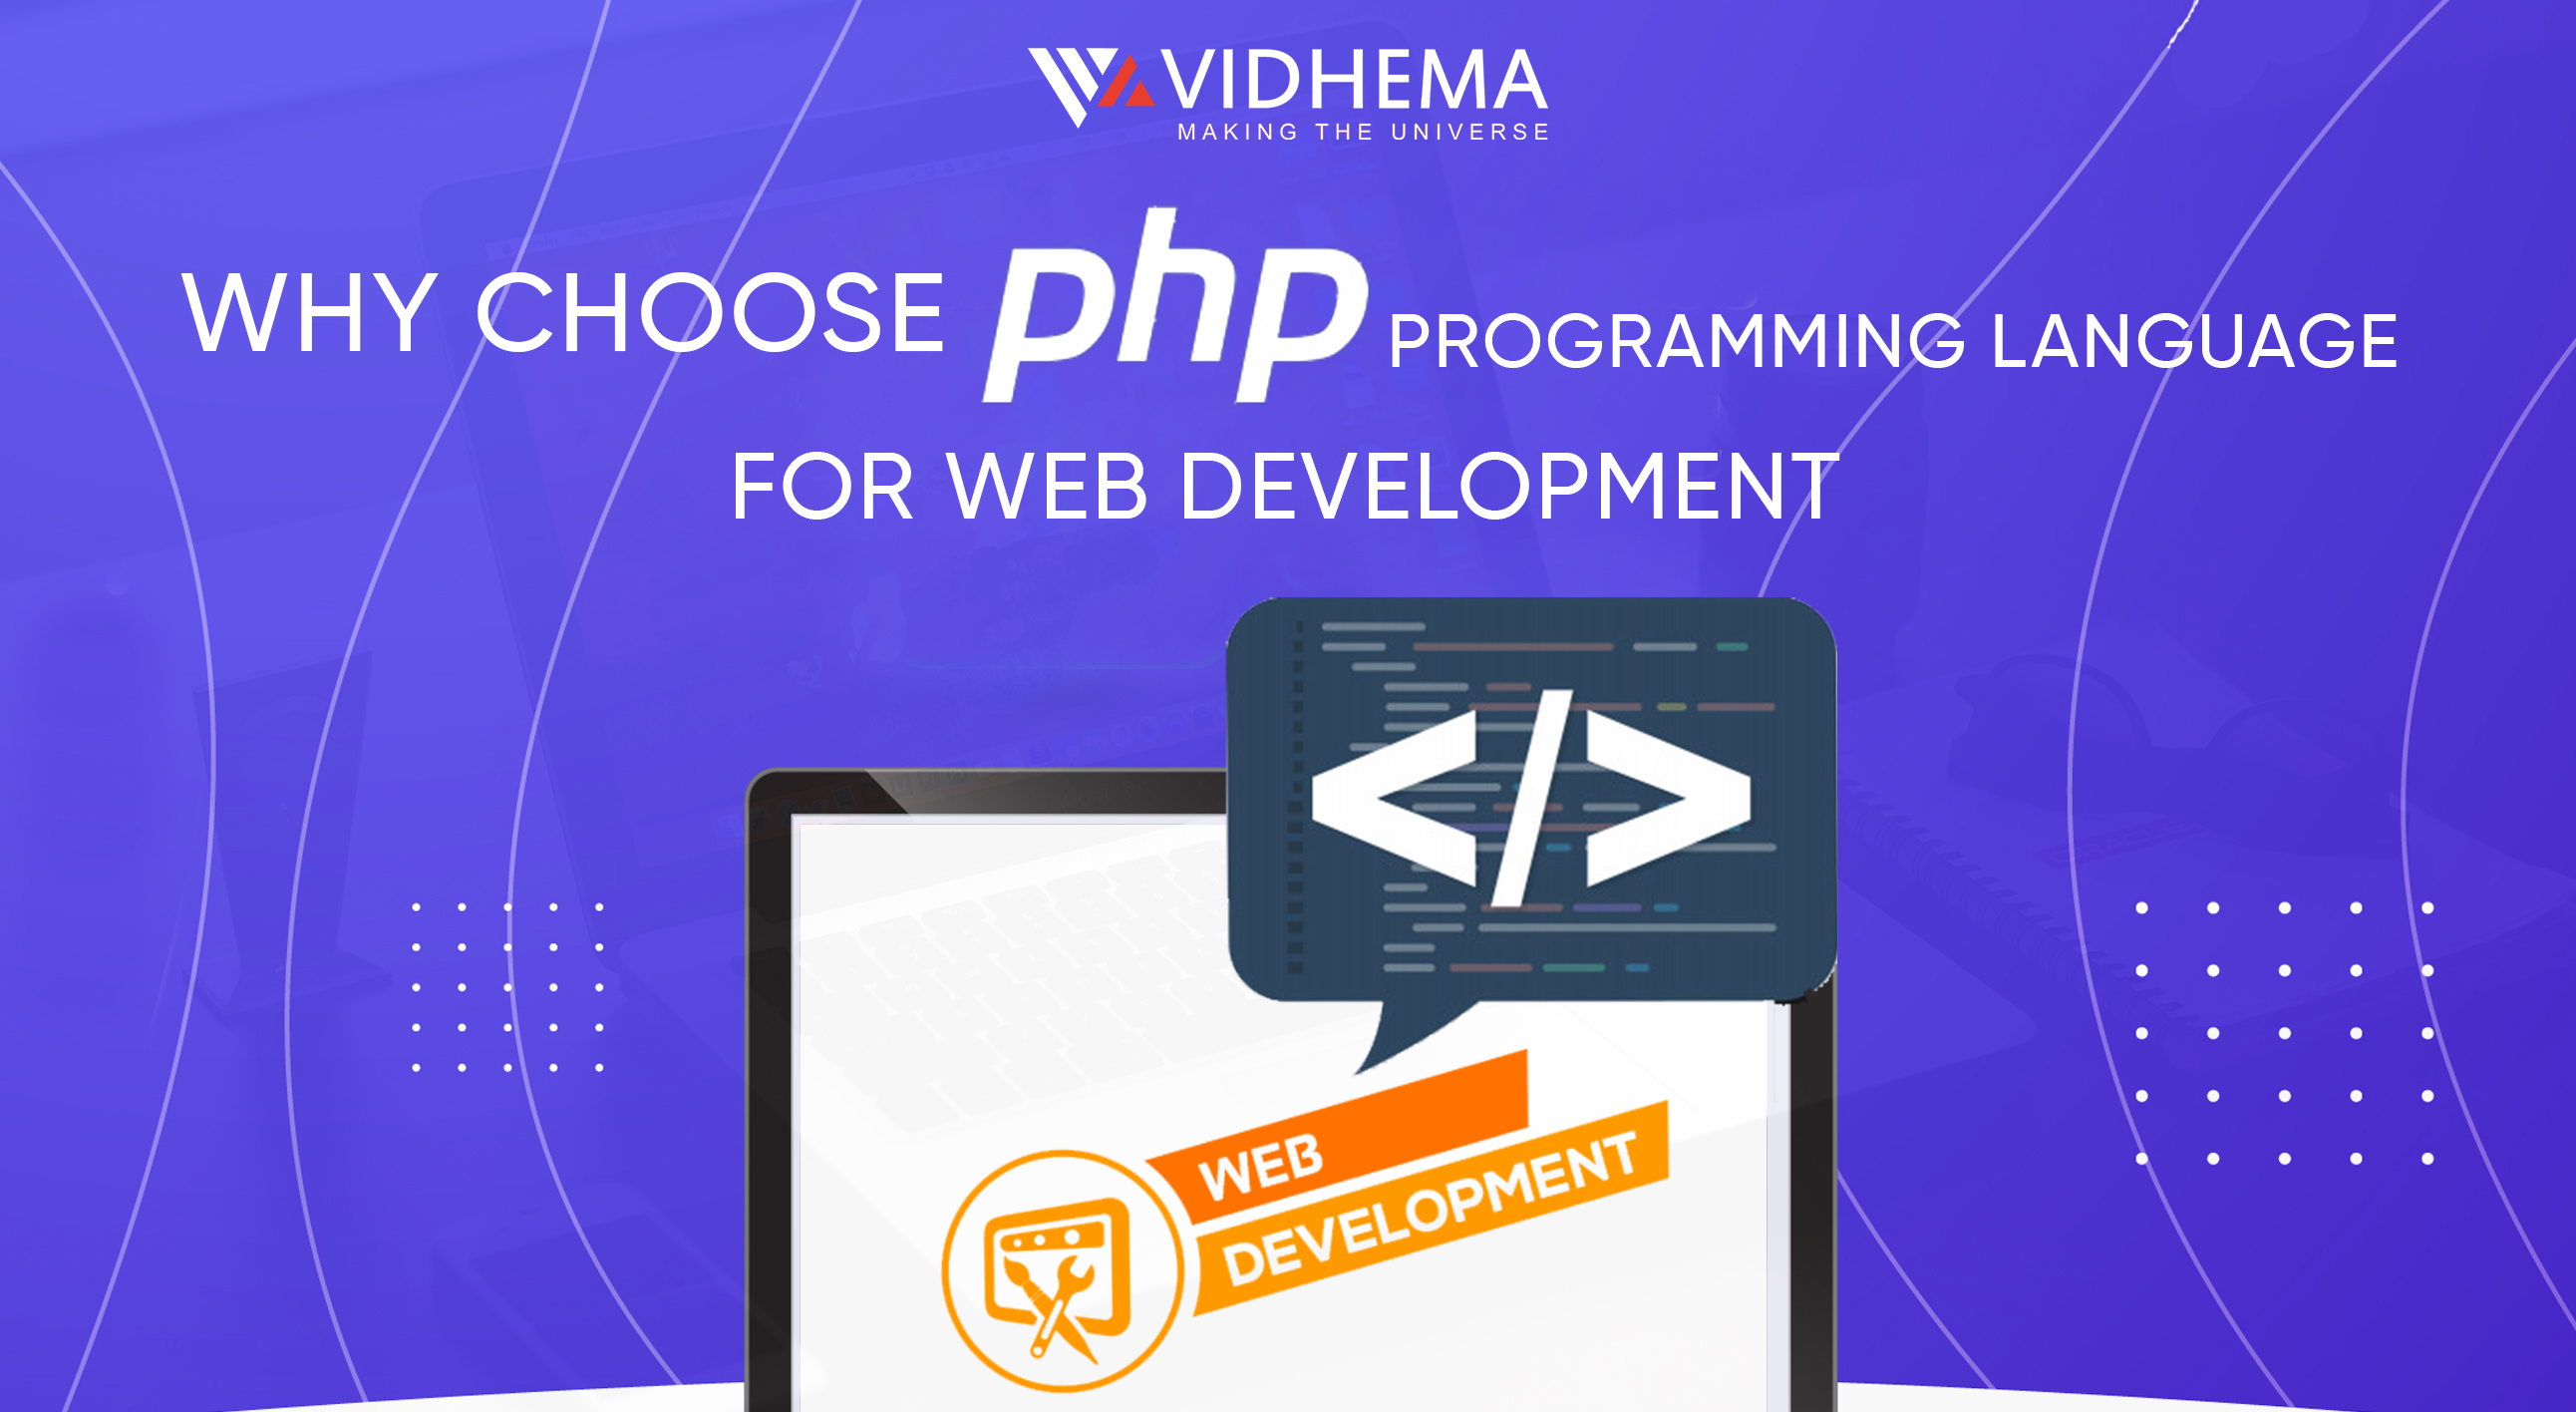 Why choose PHP programming language for web development?